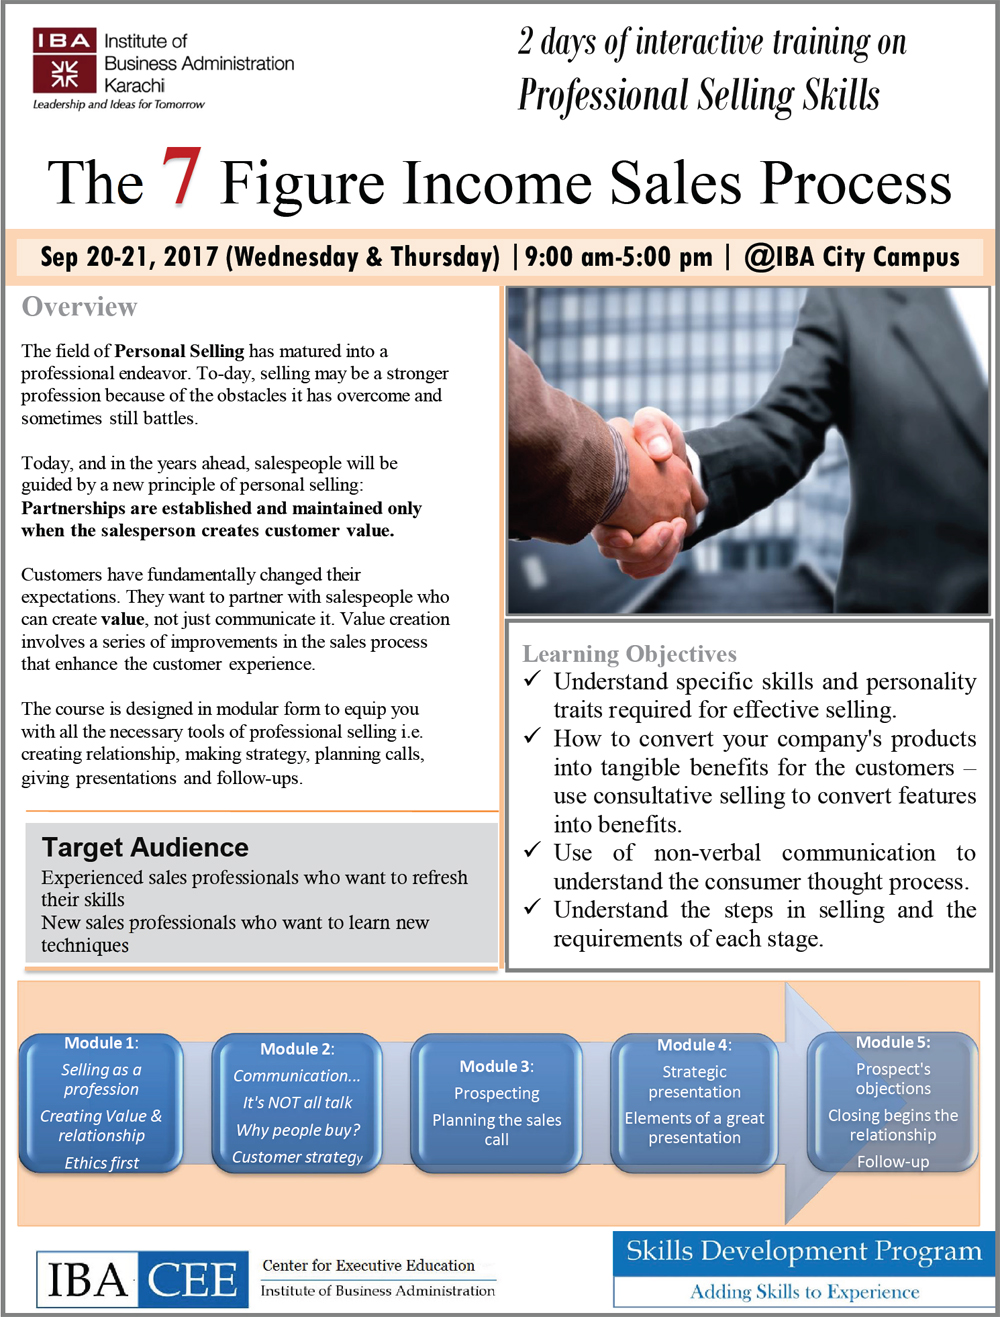 The 7 Figure Income Sales Process